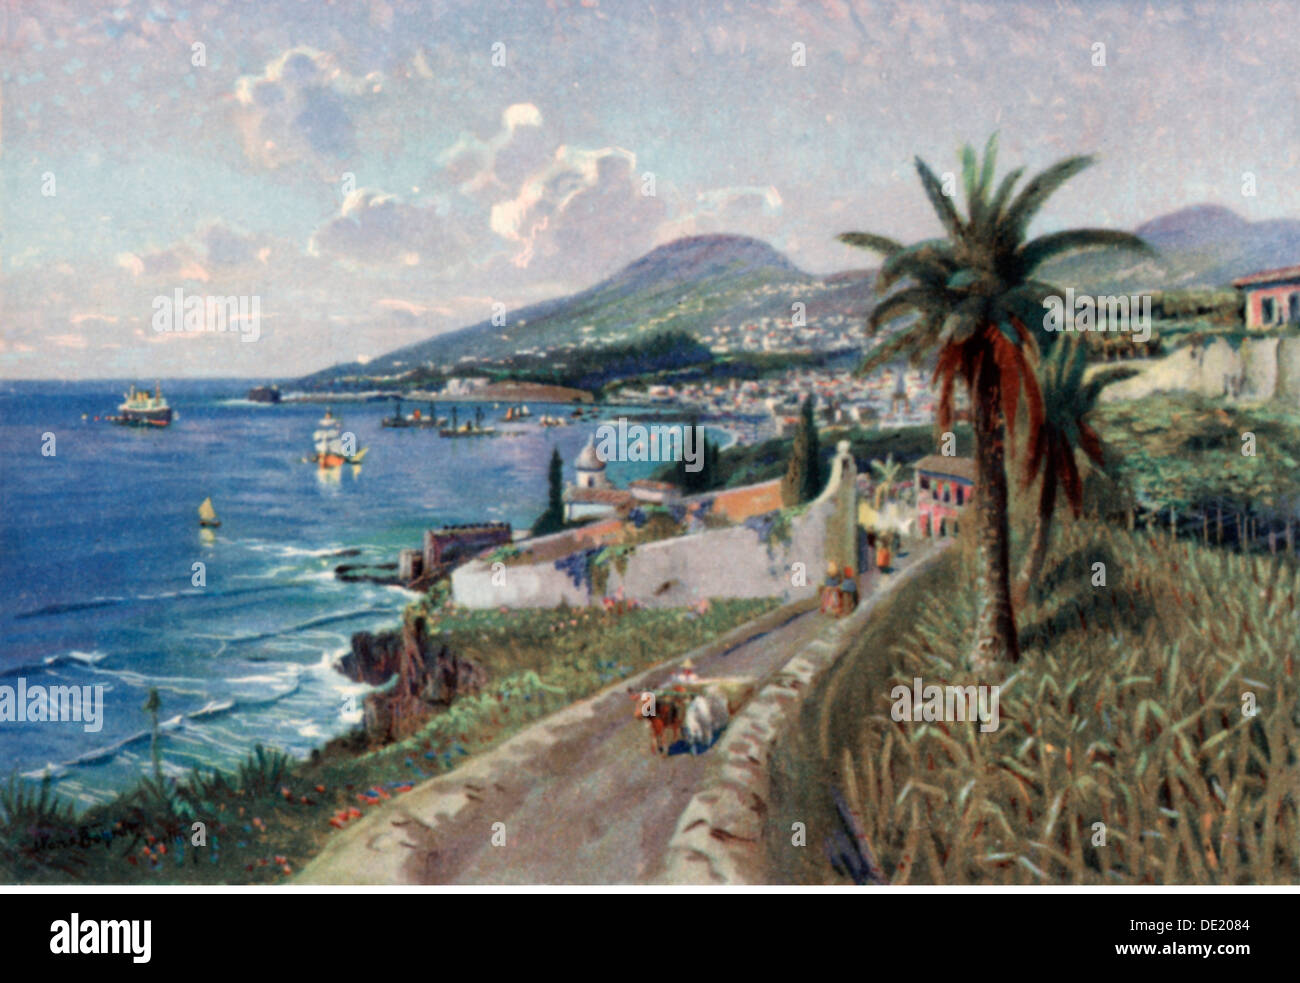 geography / travel, Portugal, Isle of Madeira, Funchal, view, art postcard, 1920s, Additional-Rights-Clearences Stock Photo